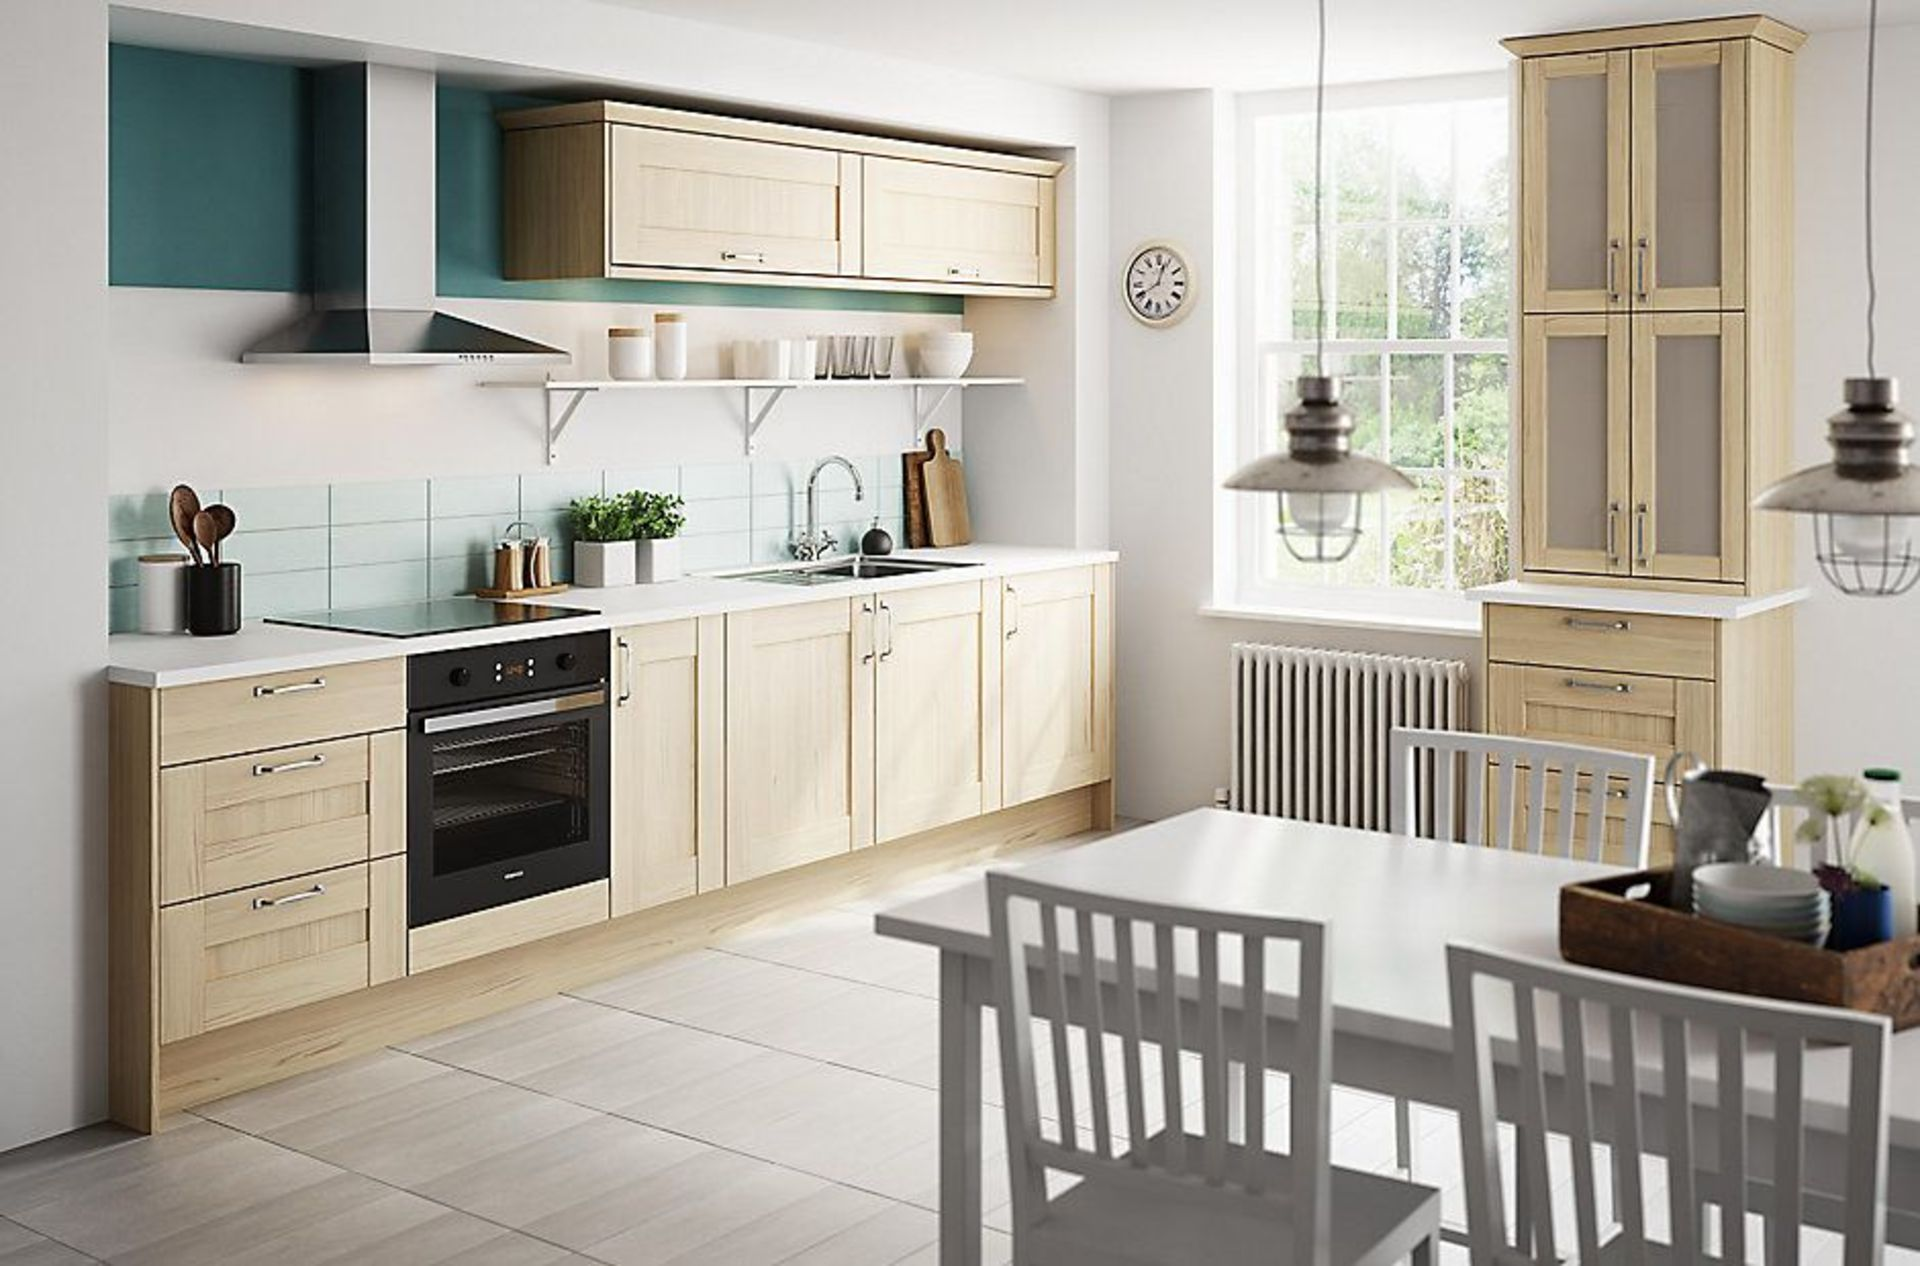 Circa 4,559 items of Kitchen Goods from the following ranges: Gloss White, Westleigh Textured Oak